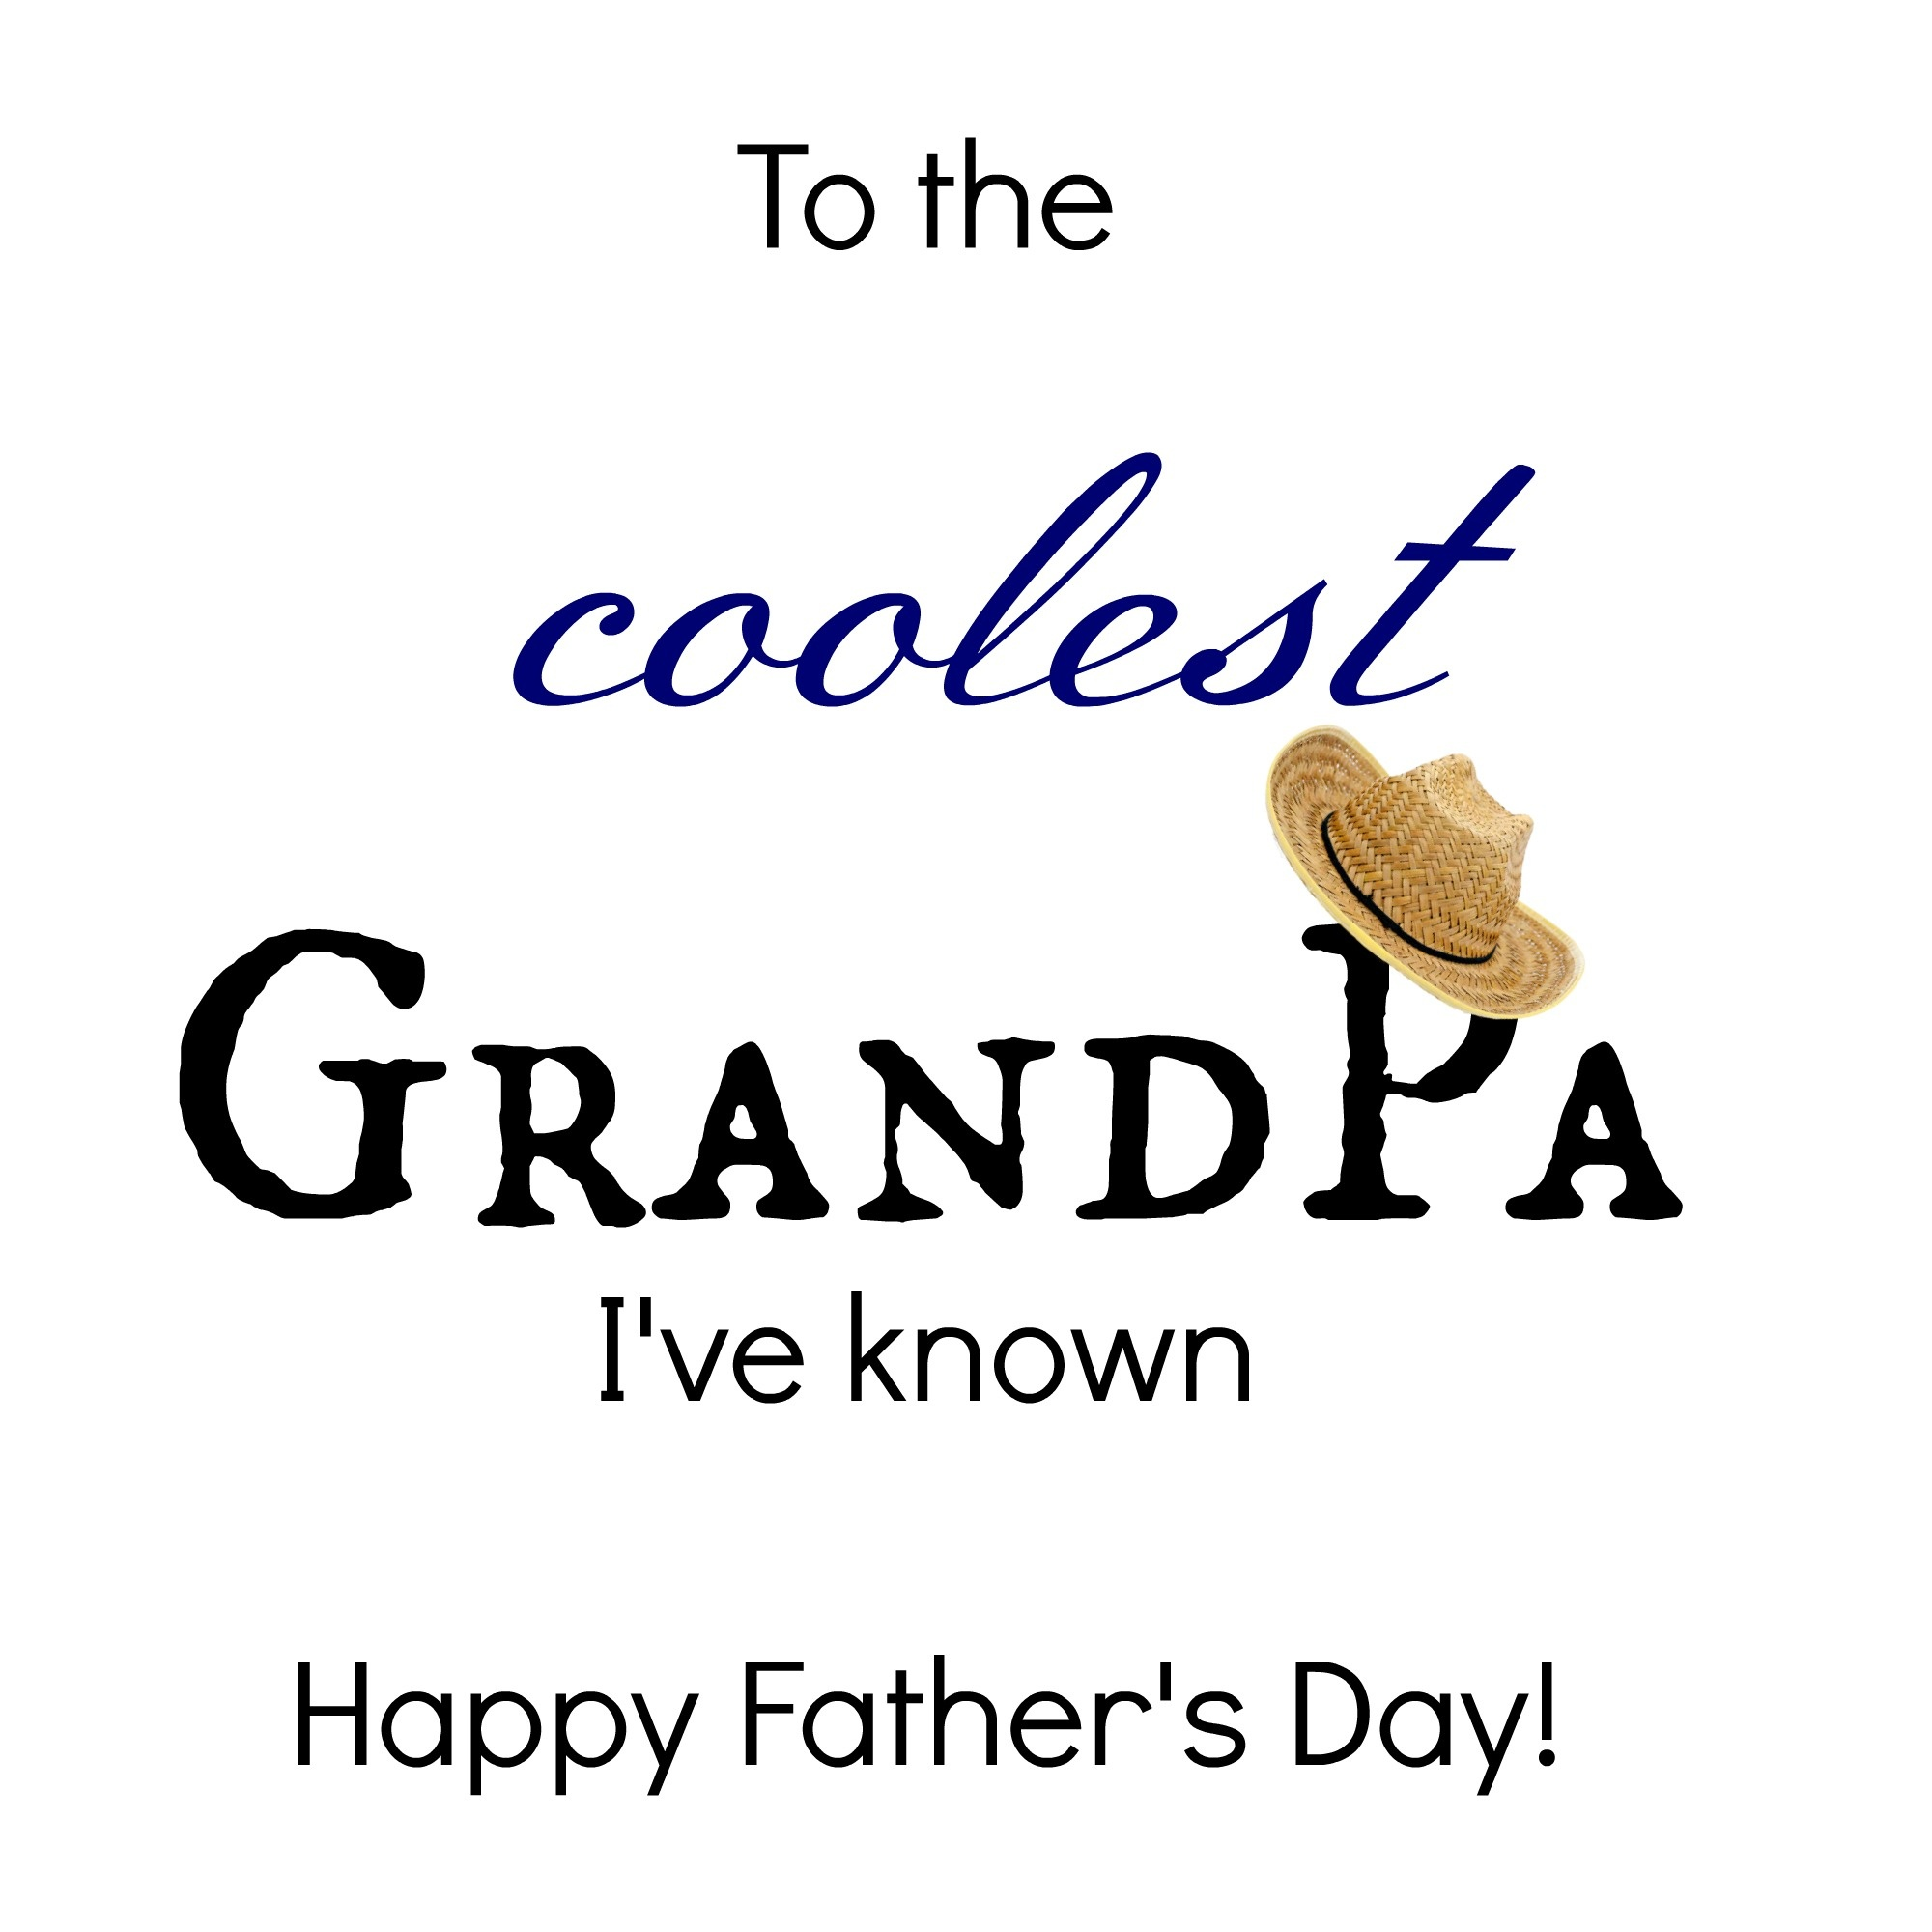 24 Free Printable Father's Day Cards | Kittybabylove - Free Printable Happy Fathers Day Grandpa Cards